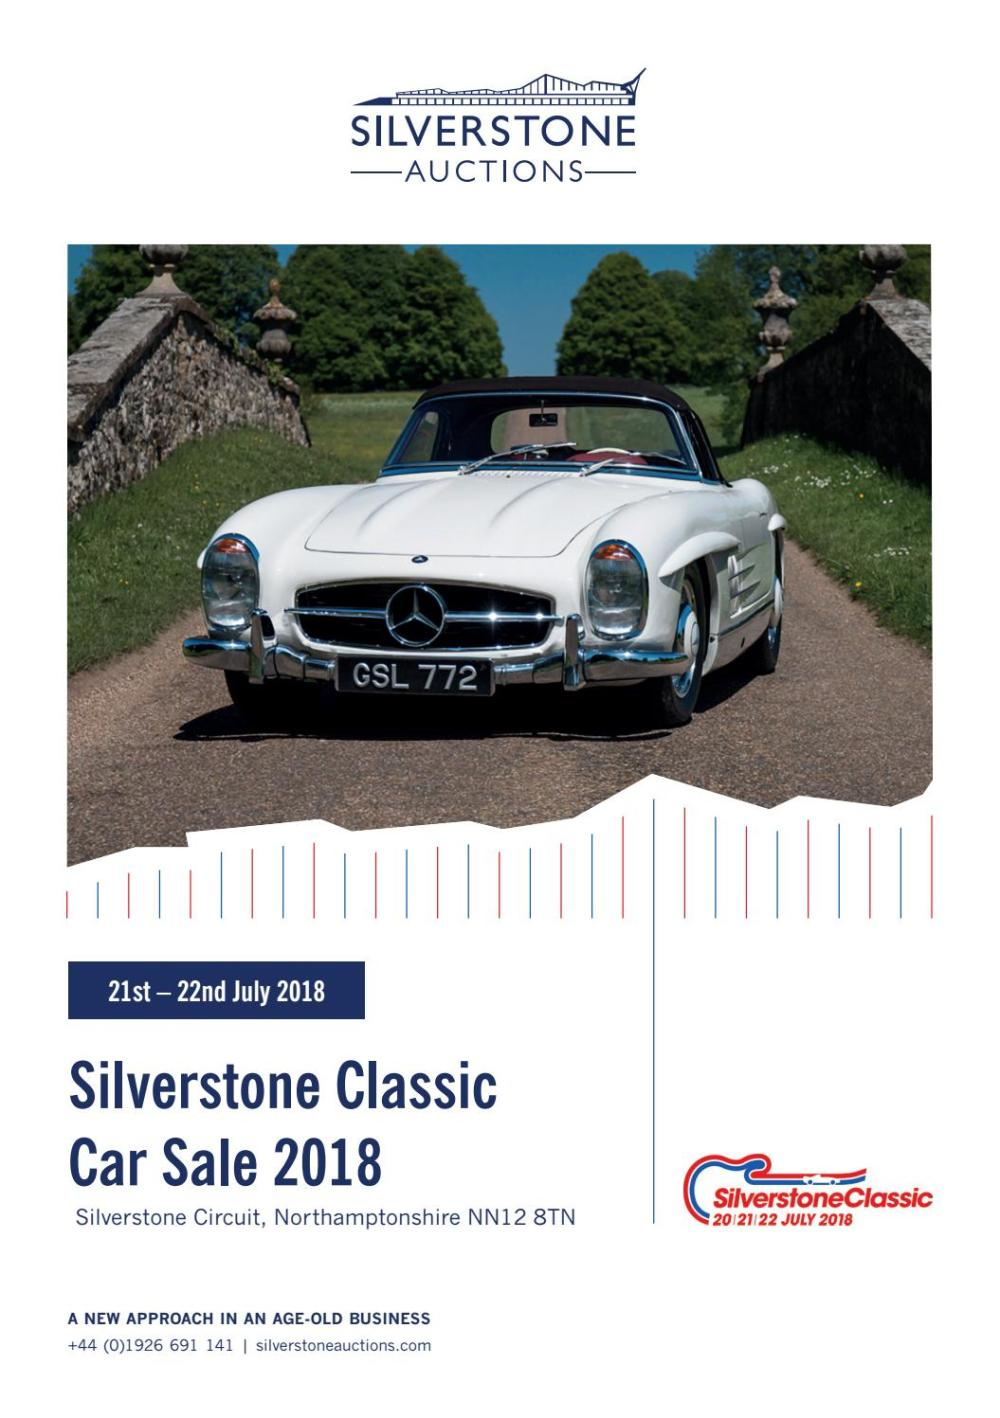 medium resolution of silverstone classic car sale 21st 22nd july 2018